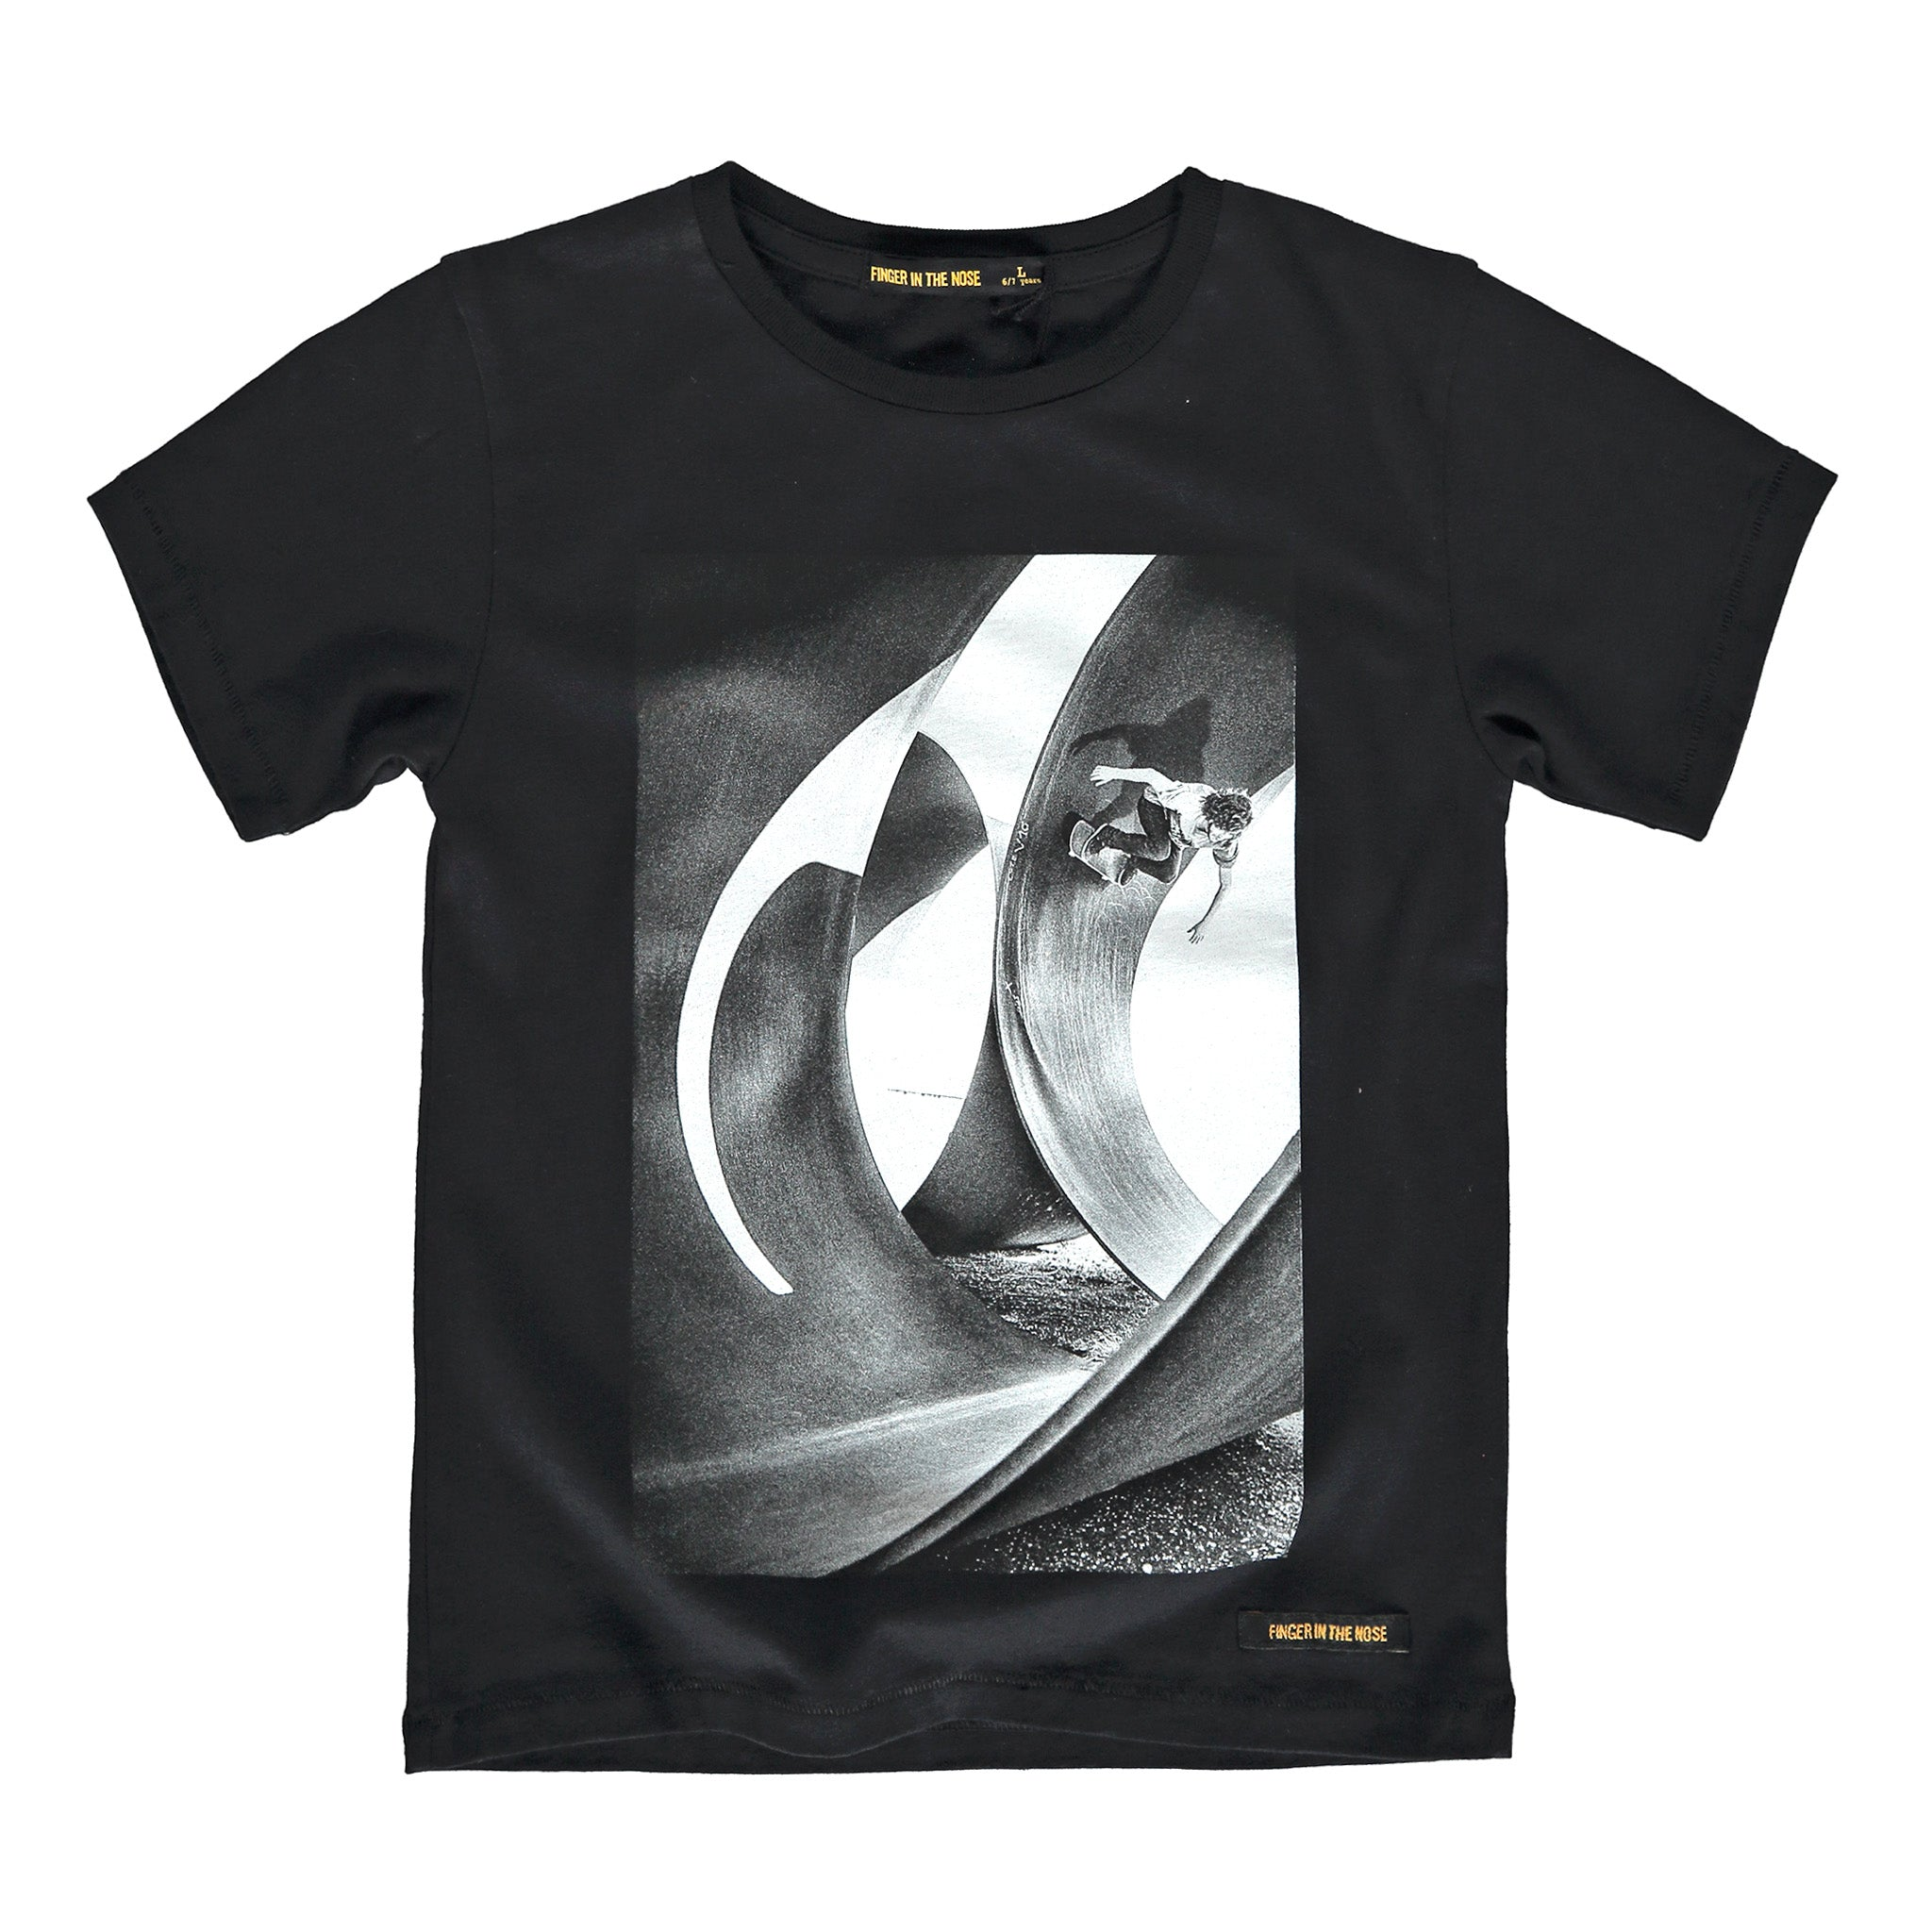 DALTON Black Skatepipe - Boy Knitted Jersey Short Sleeve T-Shirt